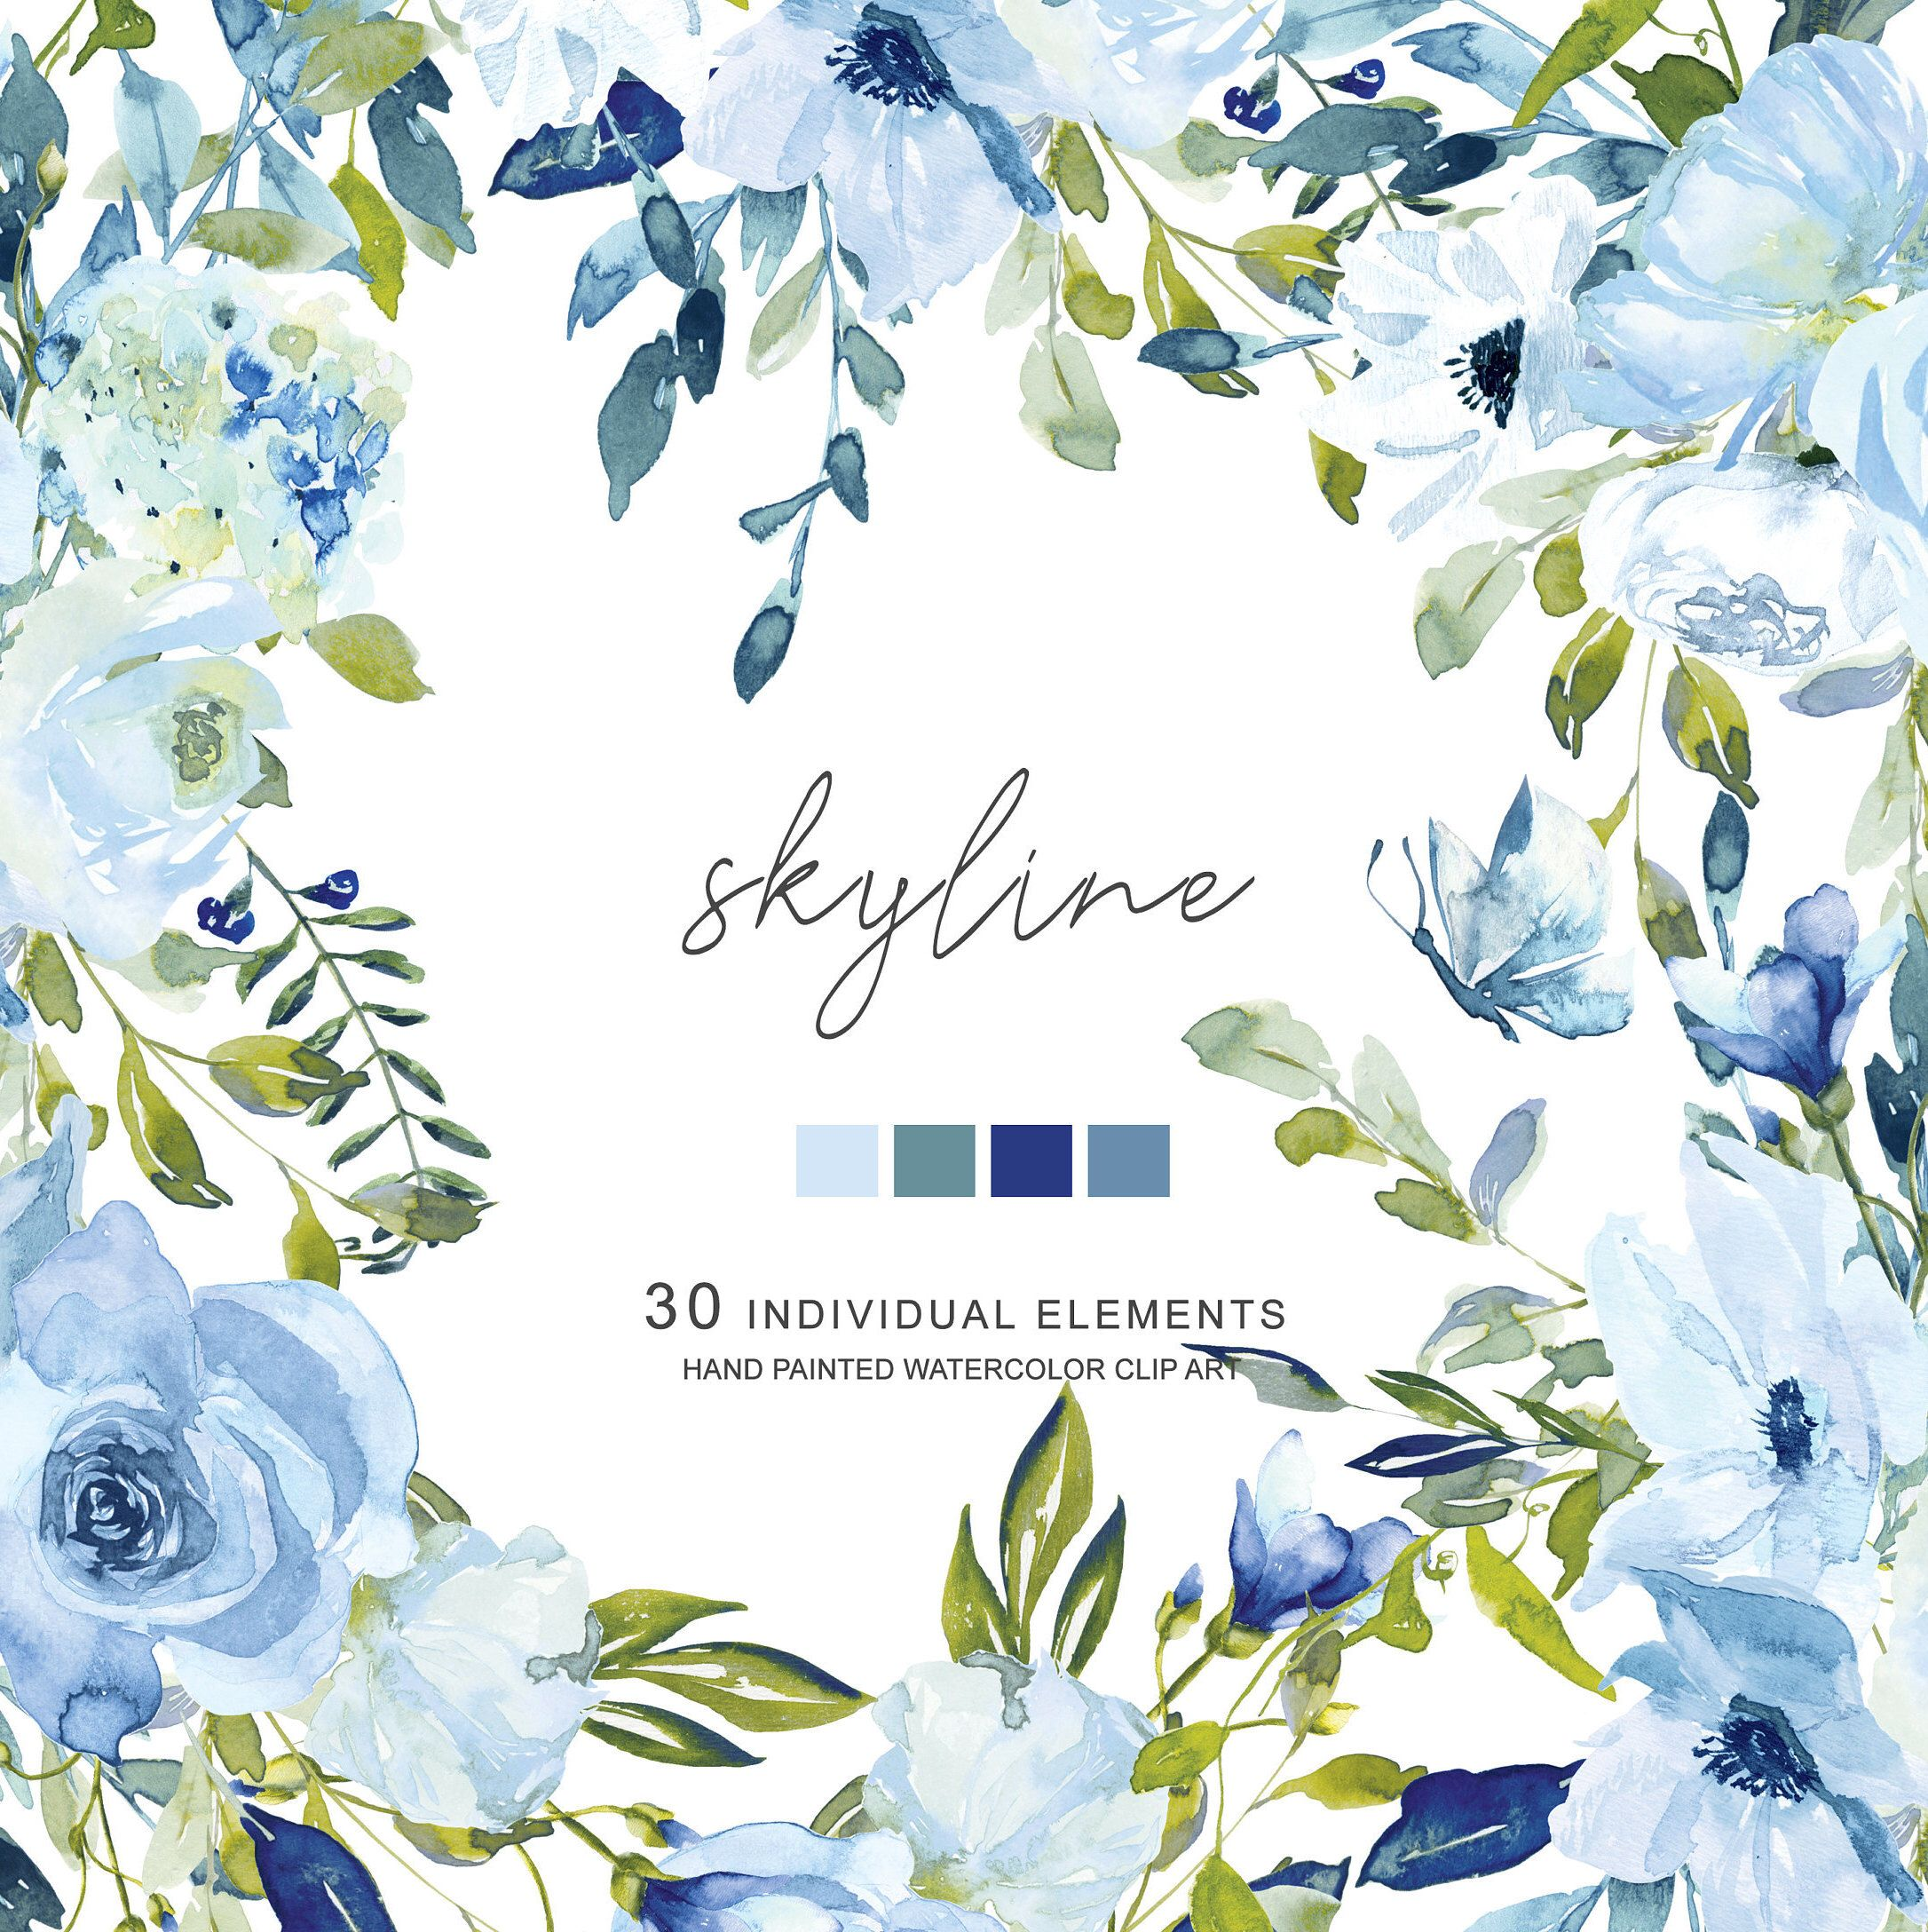 Hand Painted Watercolor Light Blue And Turquoise Flowers Clipart